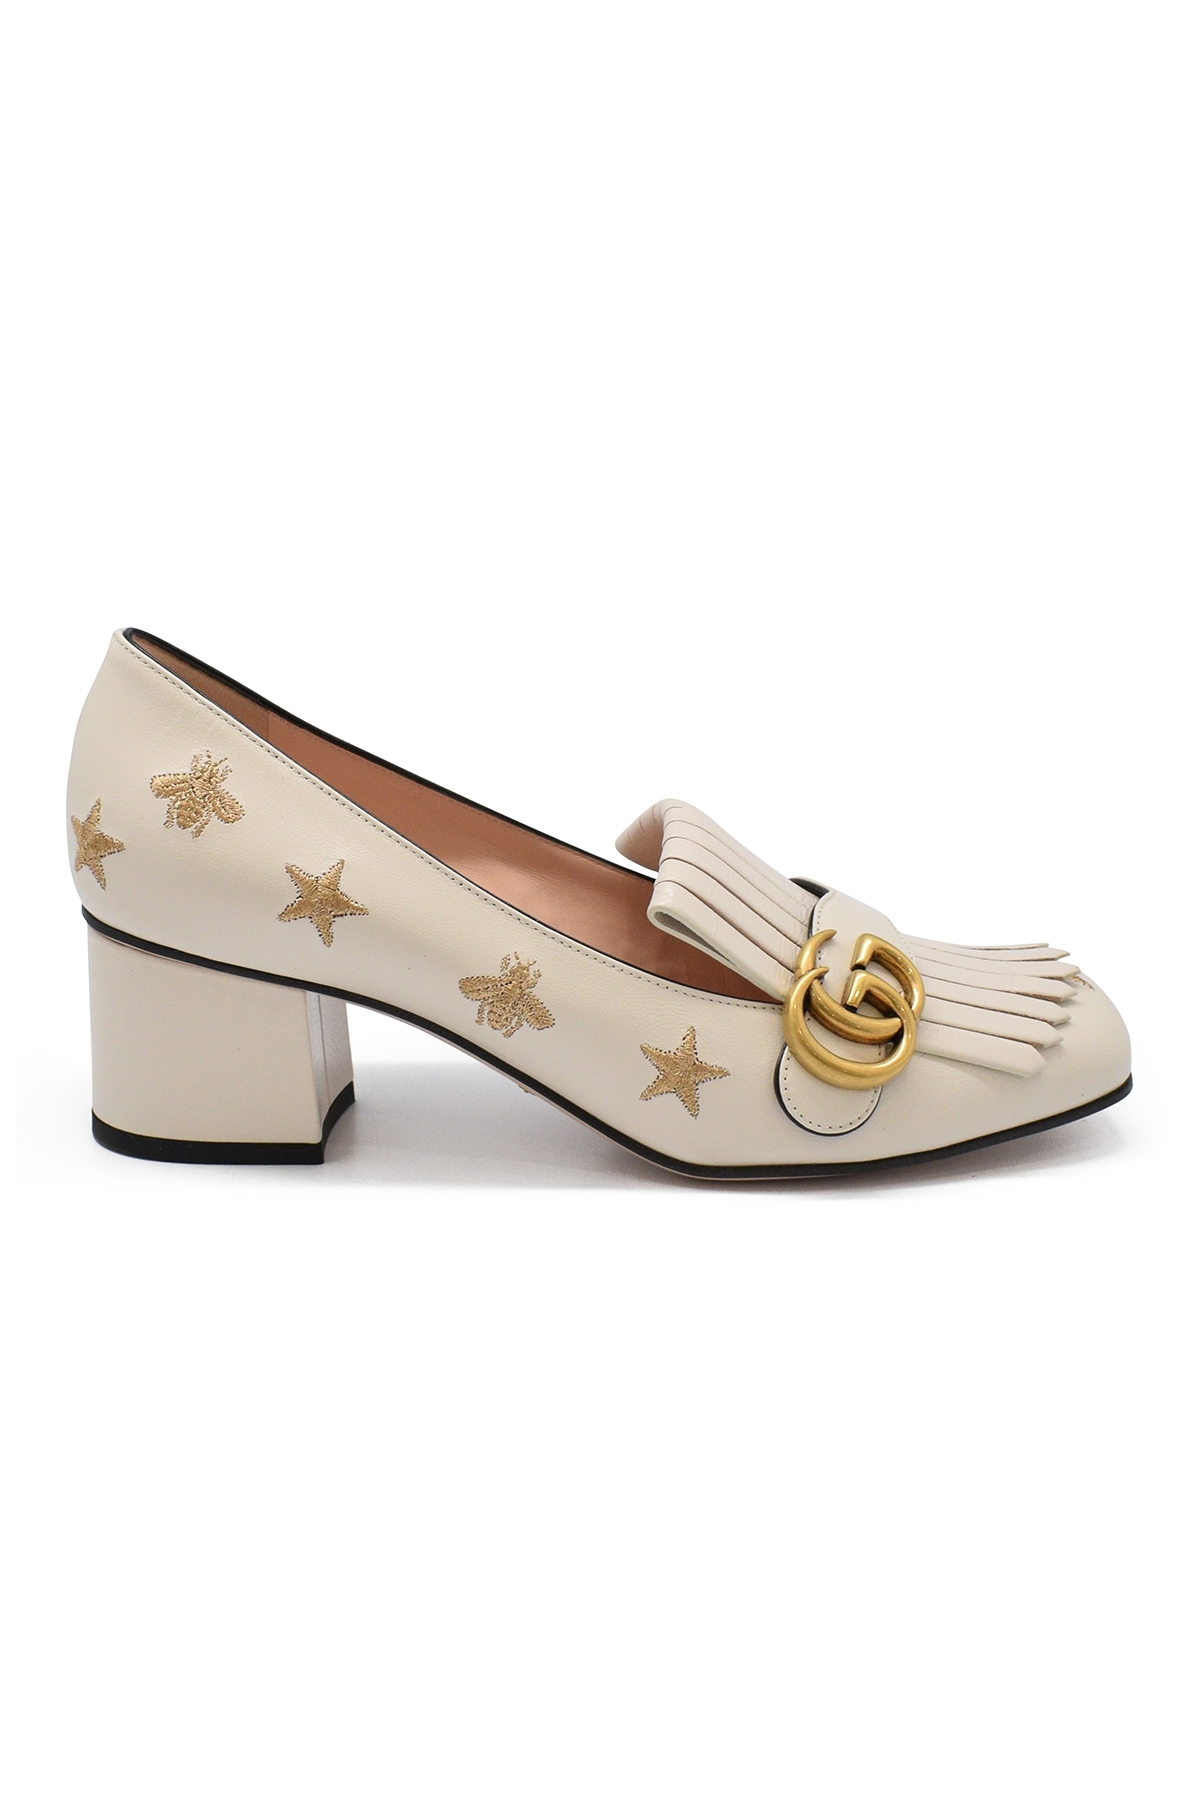 Gucci pumps with little heel in white leather with gold bees and stars embroidery, GG gold buckle and fringes on the front